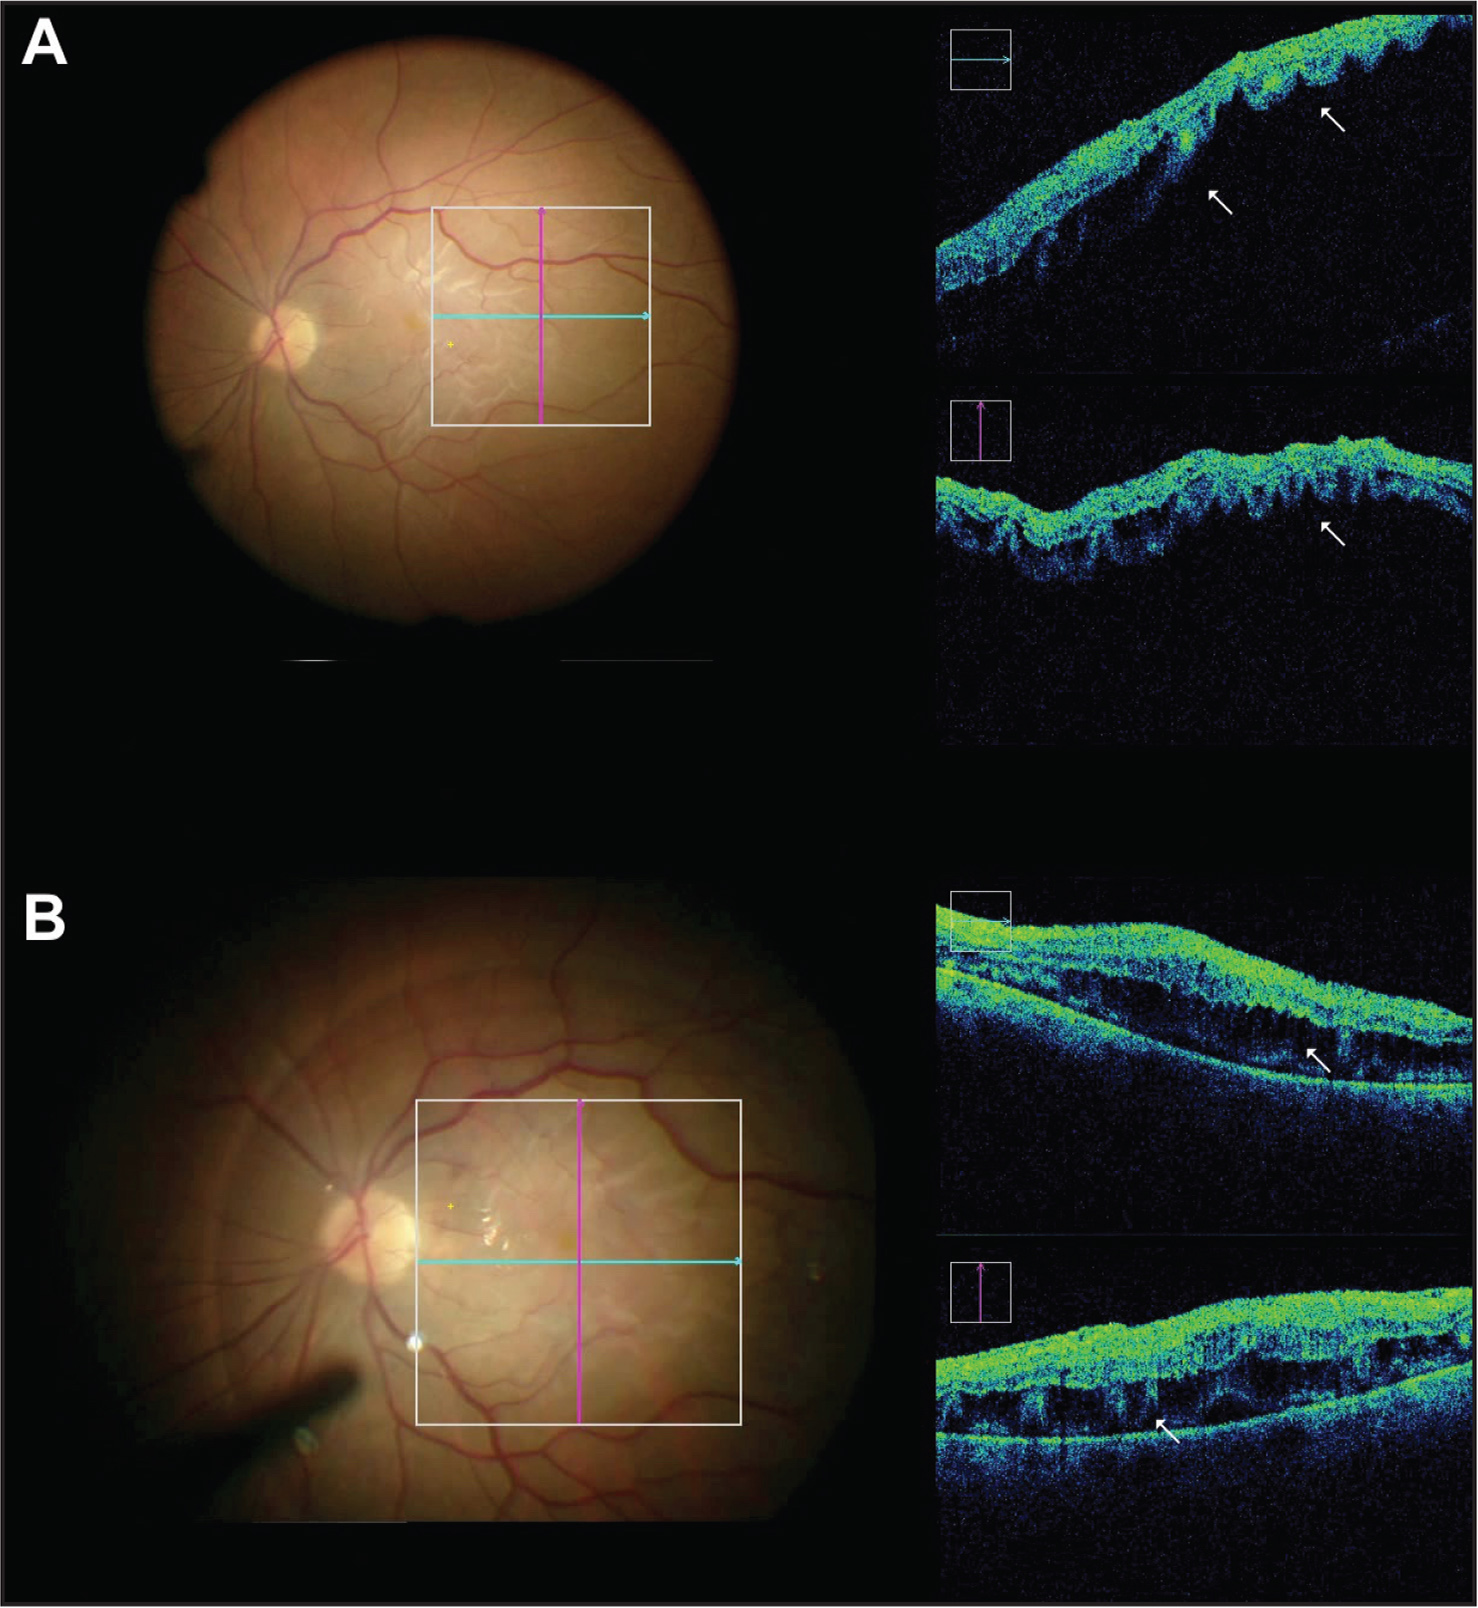 Immediate detection of macula-on or -off situation during surgery. (A) Accordion-shaped microarchitectural alteration of the outer layers of the retina and retinal edema. (B) The microarchitectural alteration persists after reattachment of the retina.